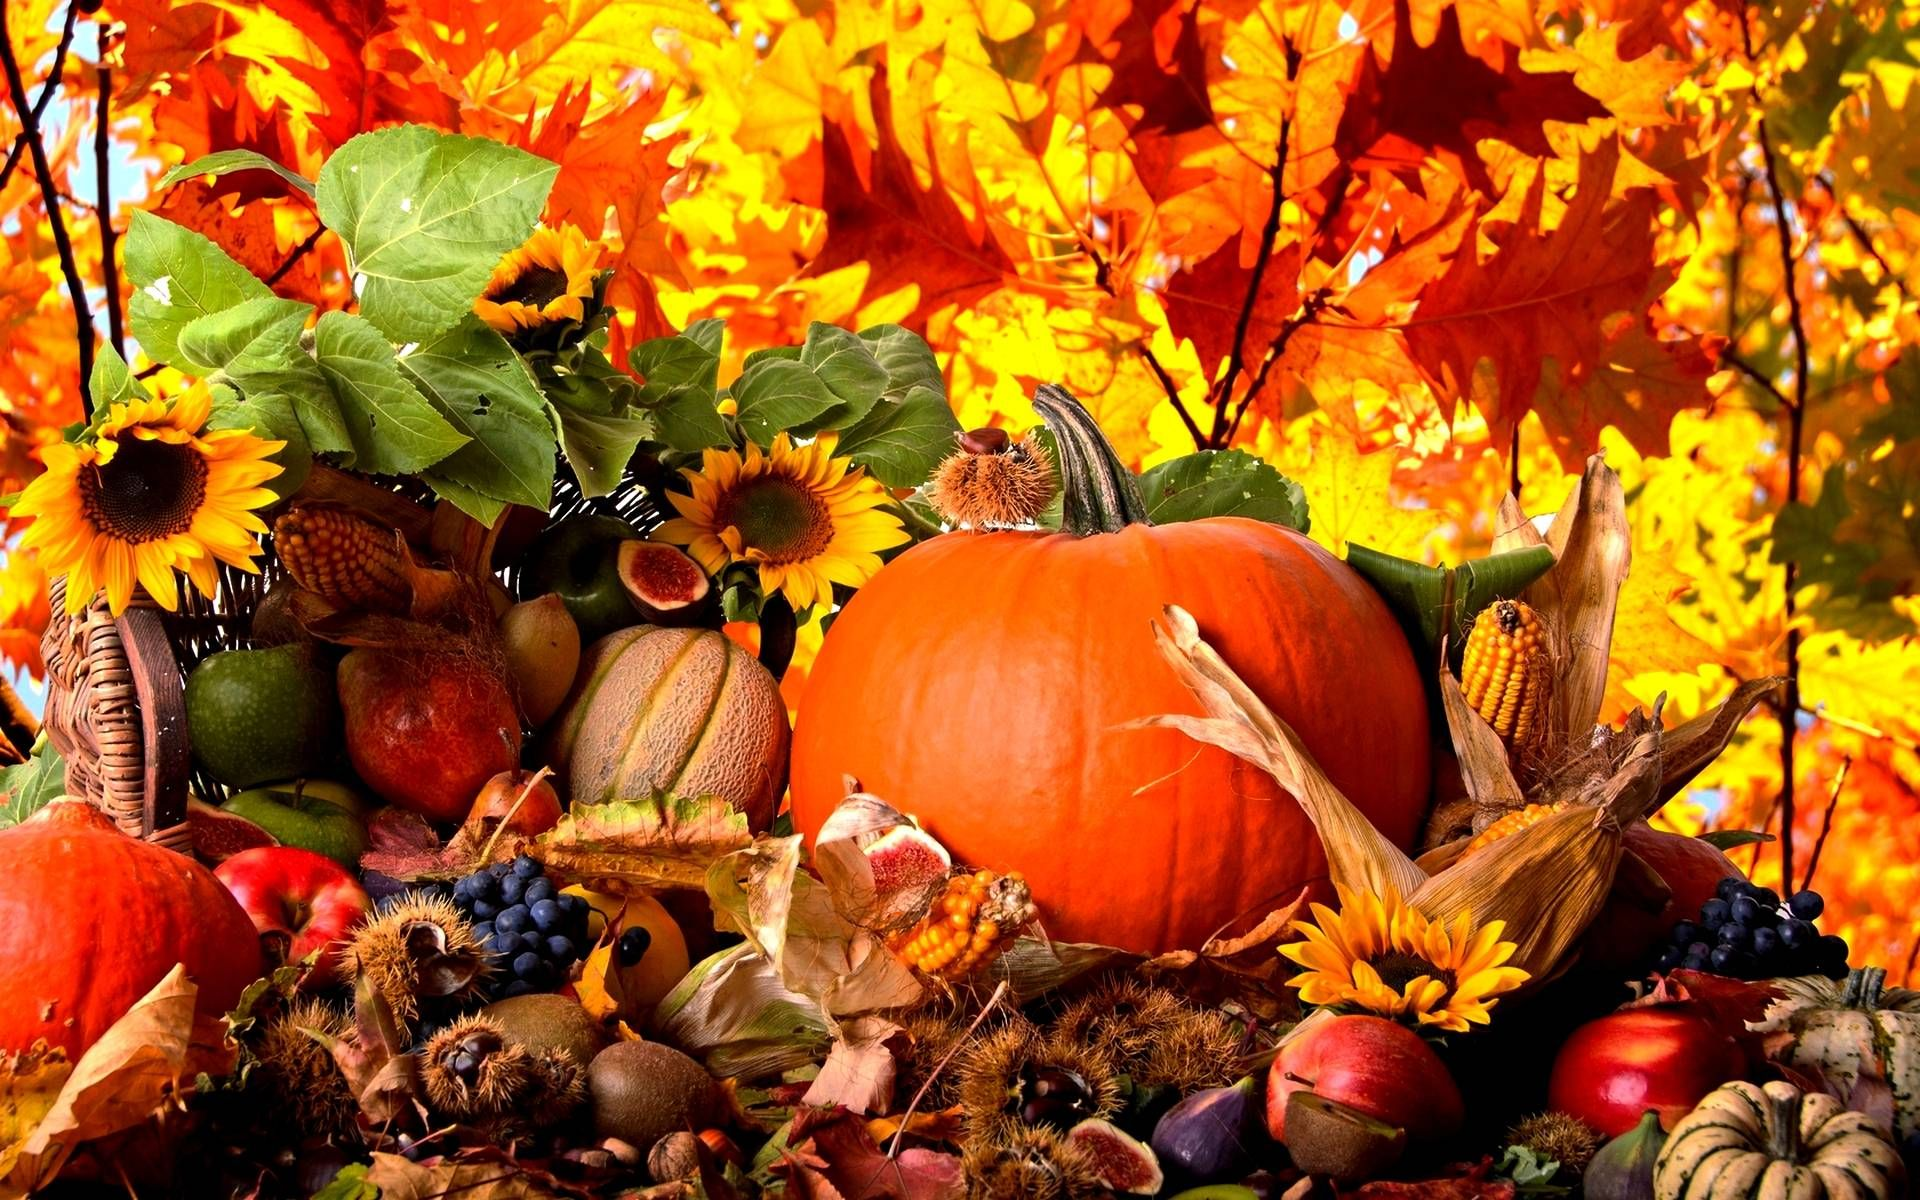 Download Fall Harvest Wallpaper High Quality For Iphone Pc Desktop Android Or Mac Ipho Pumpkin Wallpaper Thanksgiving Wallpaper Free Thanksgiving Wallpaper